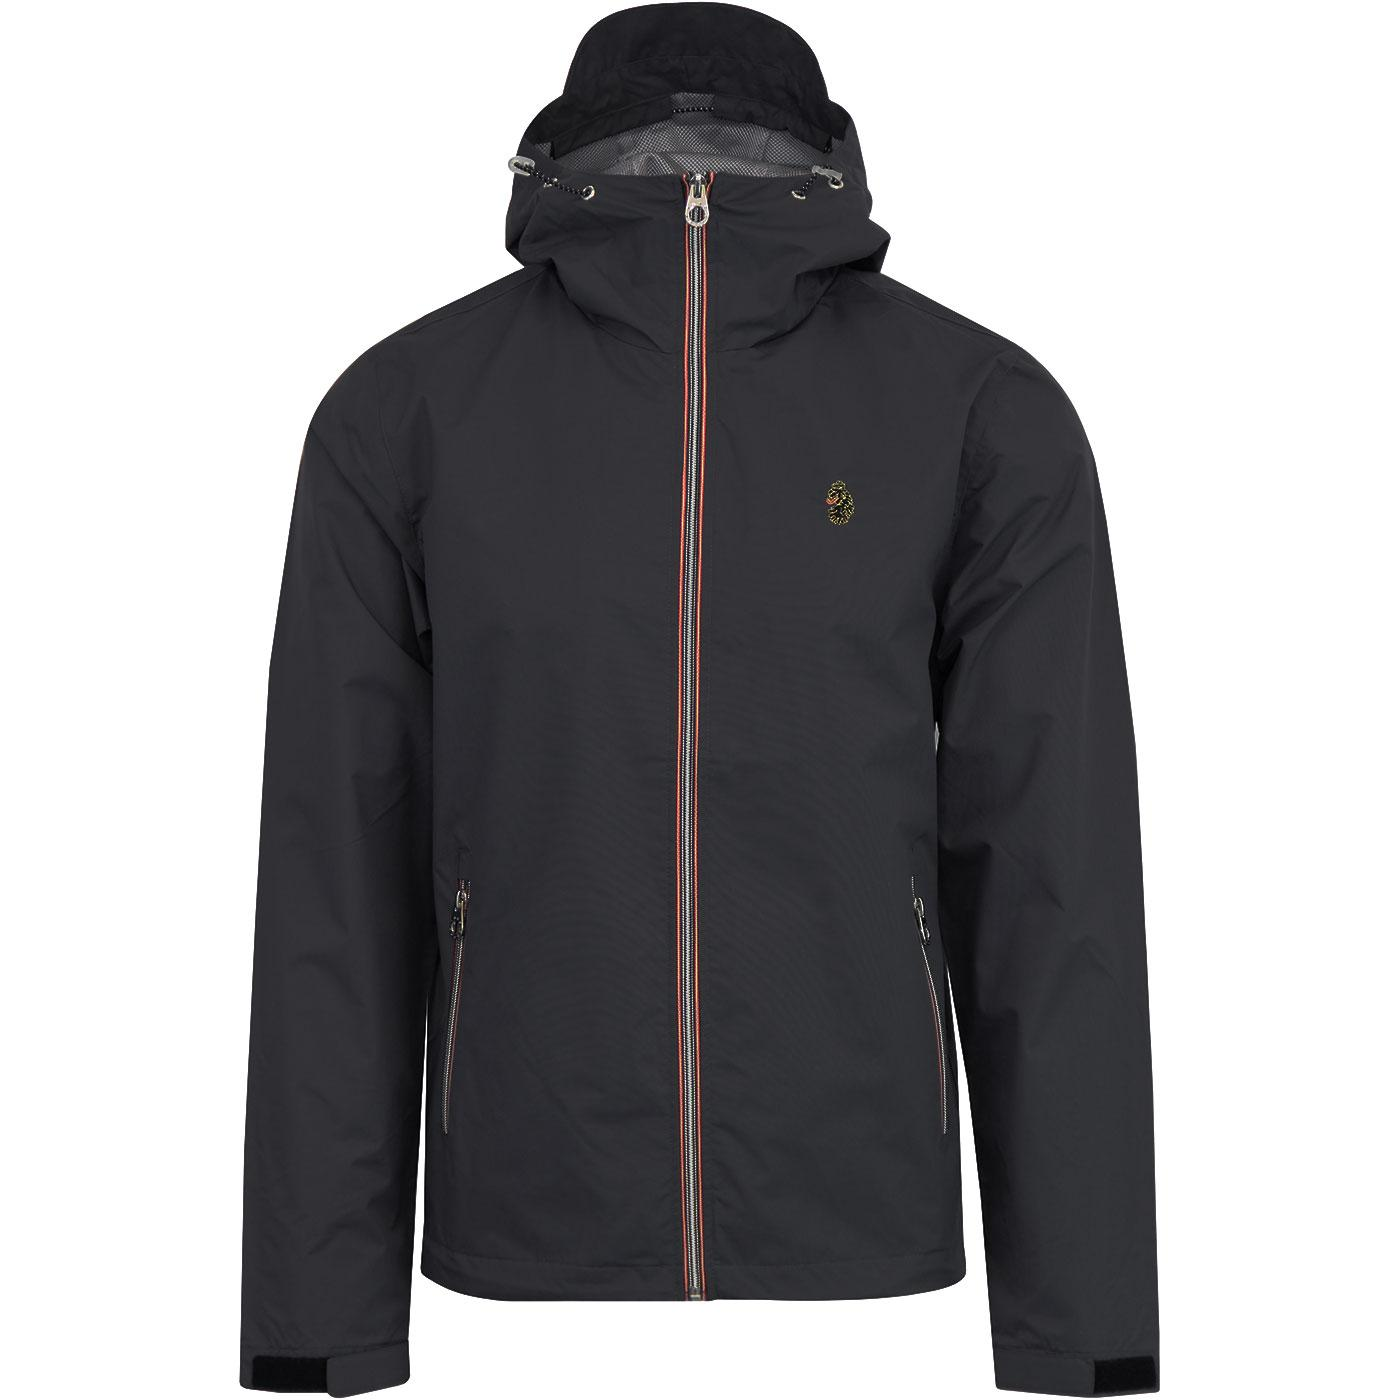 Raleigh LUKE 1977 Retro Anorak Jacket (Charcoal)